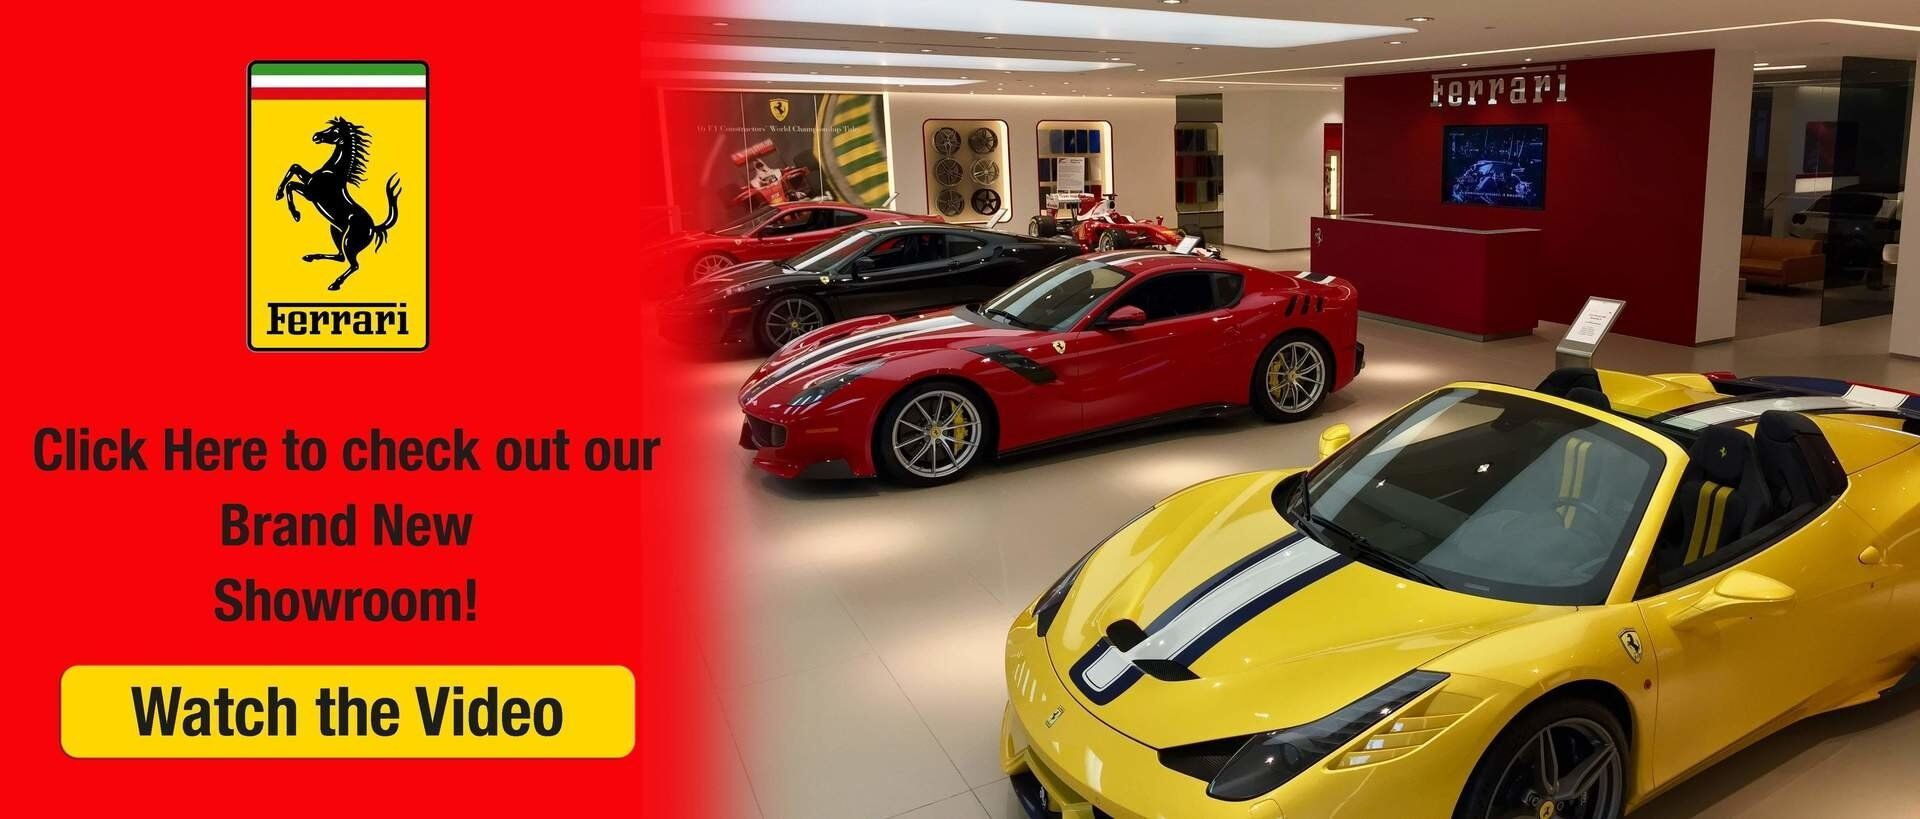 new-ferrari-showroom-foreign-cars-italia-greensboro-north-carolina